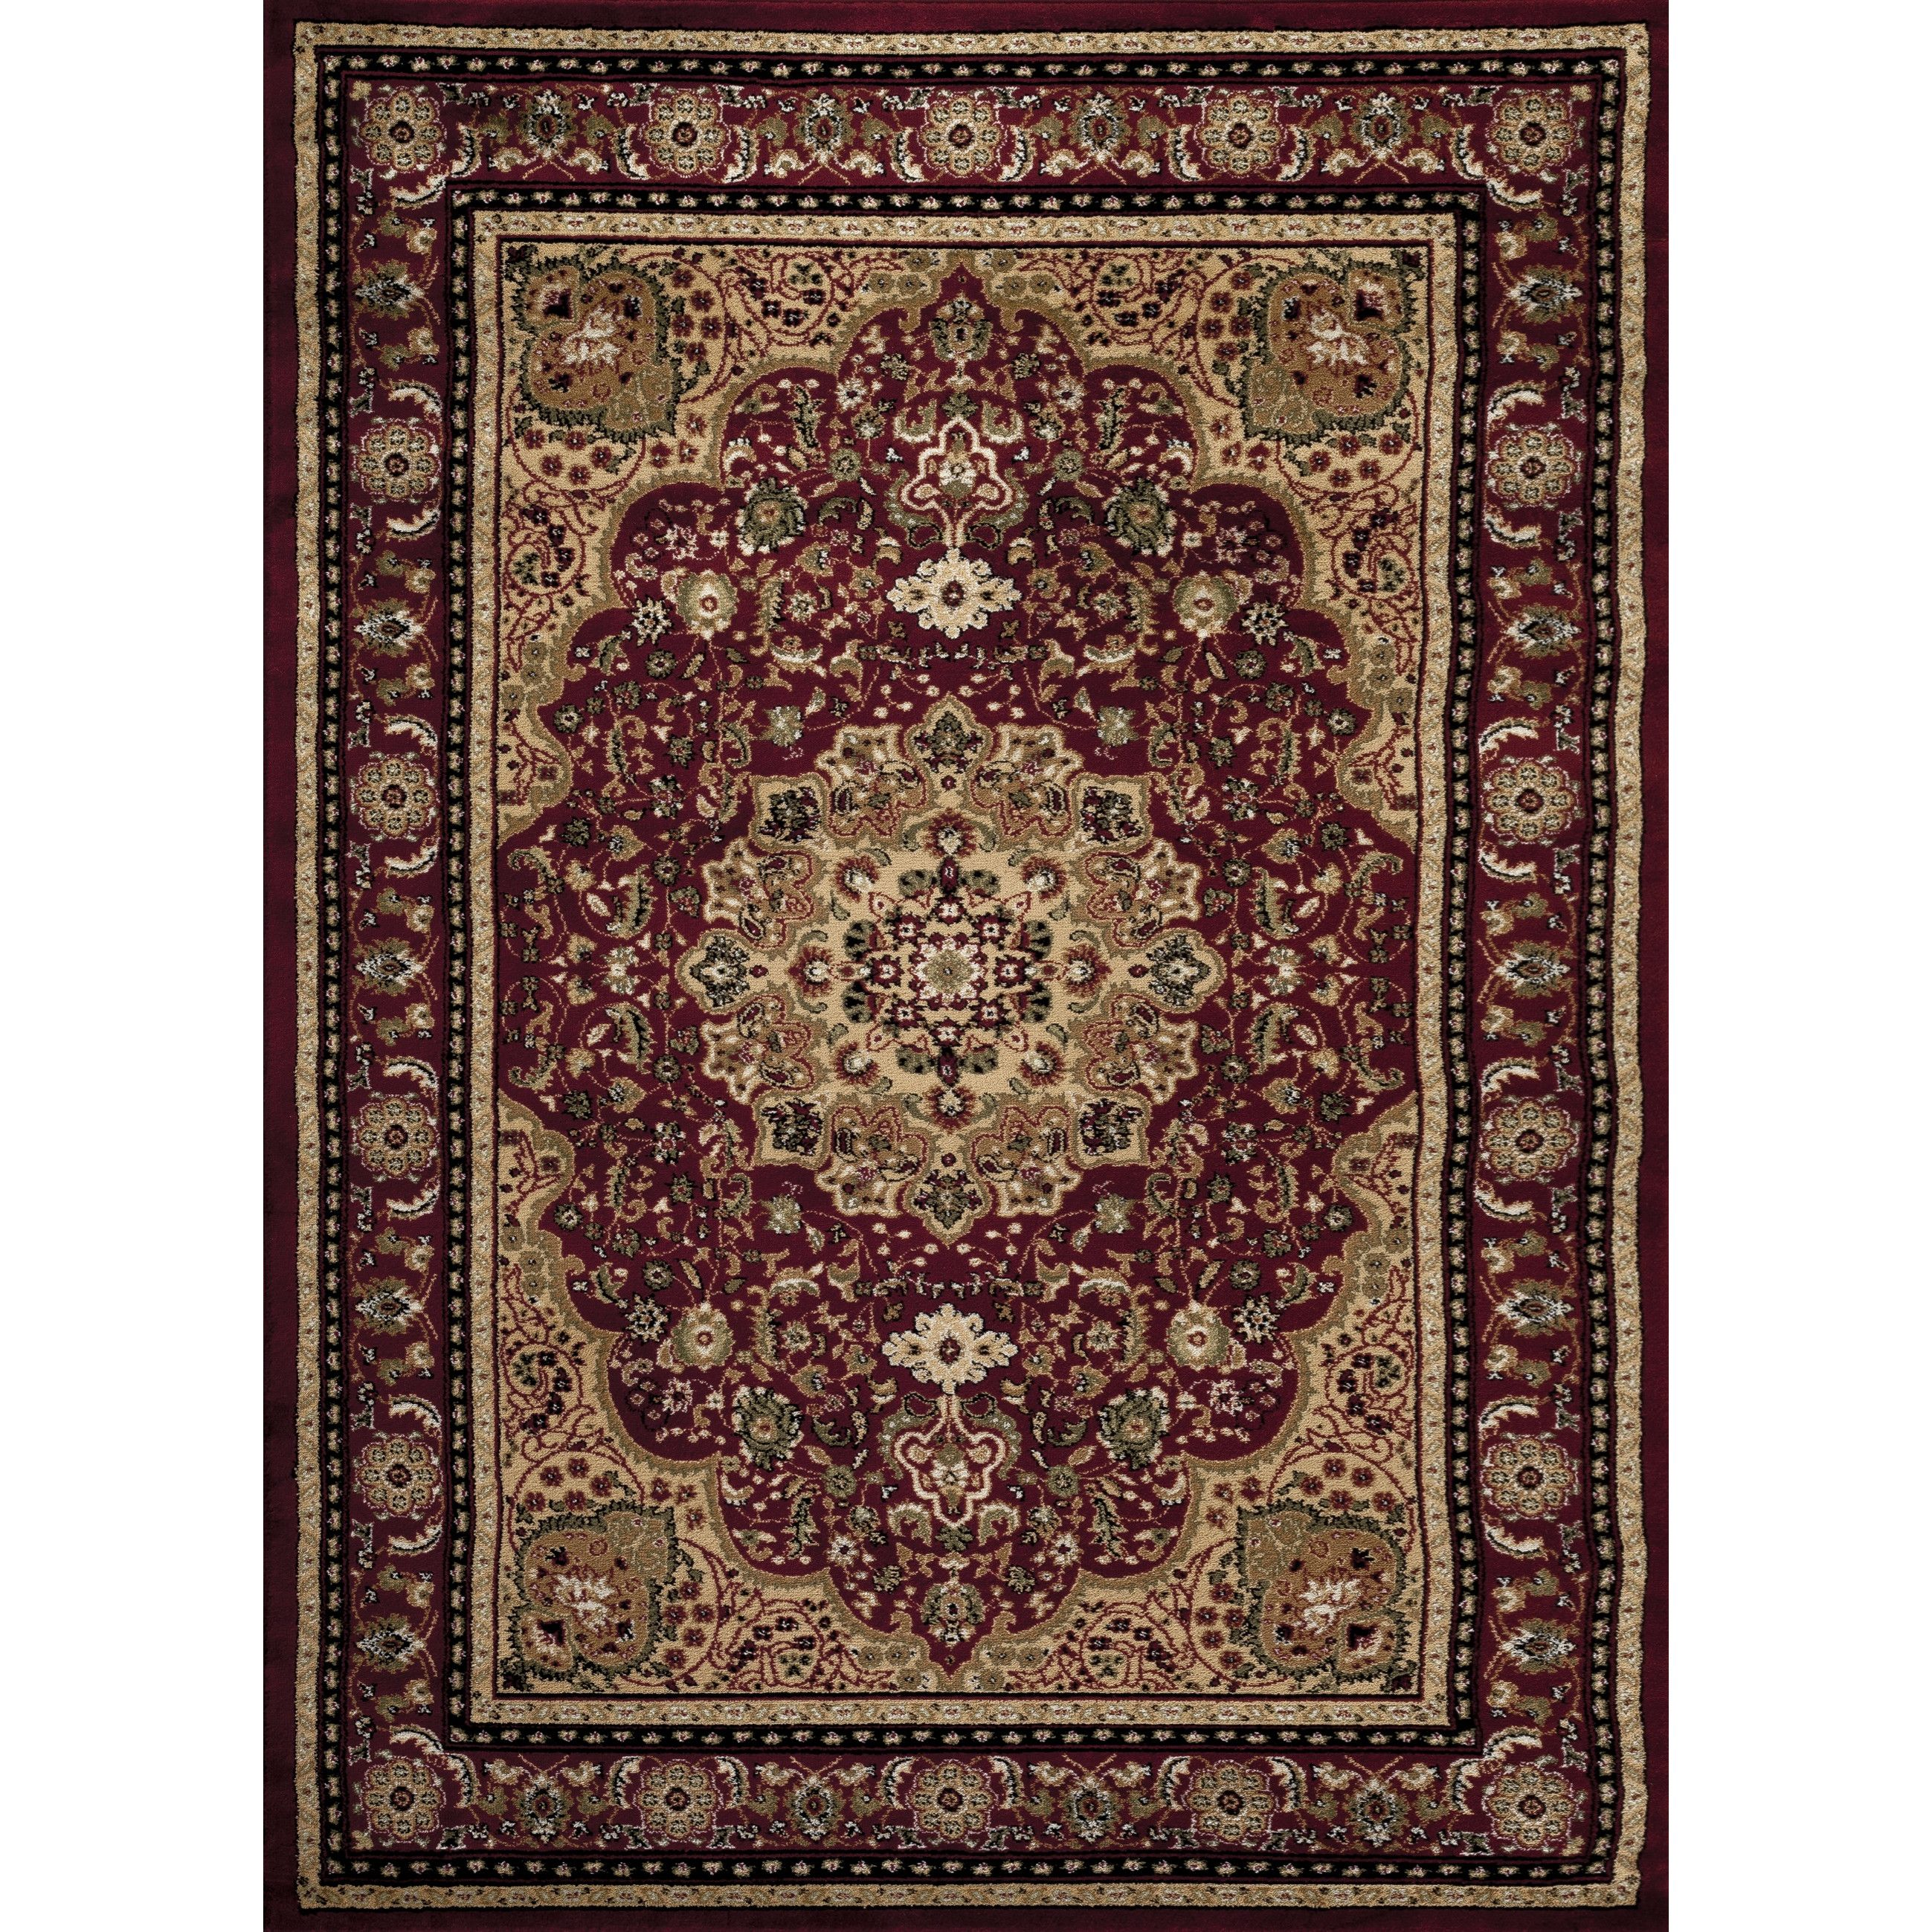 ideas of size room wayfair living rugs full carpets round modern rug ikea cheap area clearance